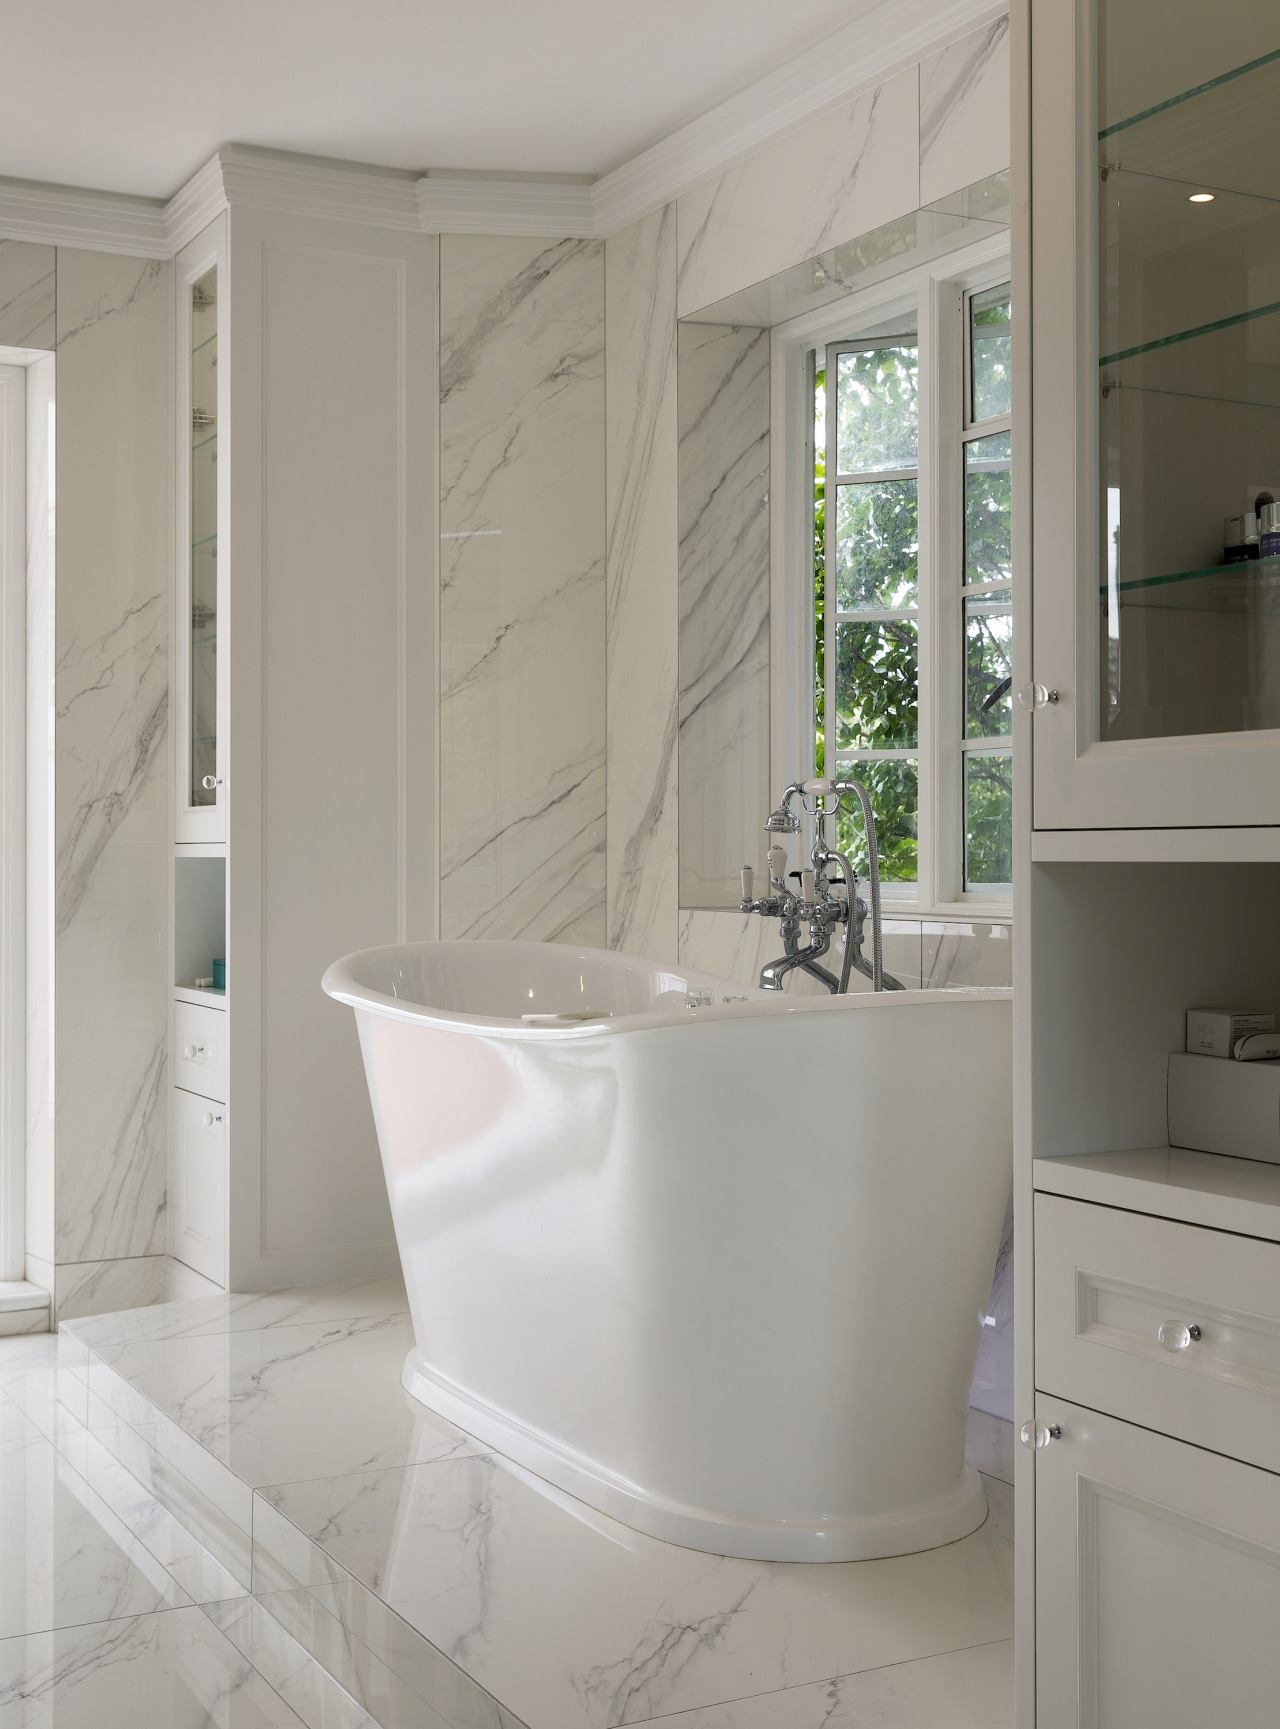 The shower and bathtub are both on plinths,